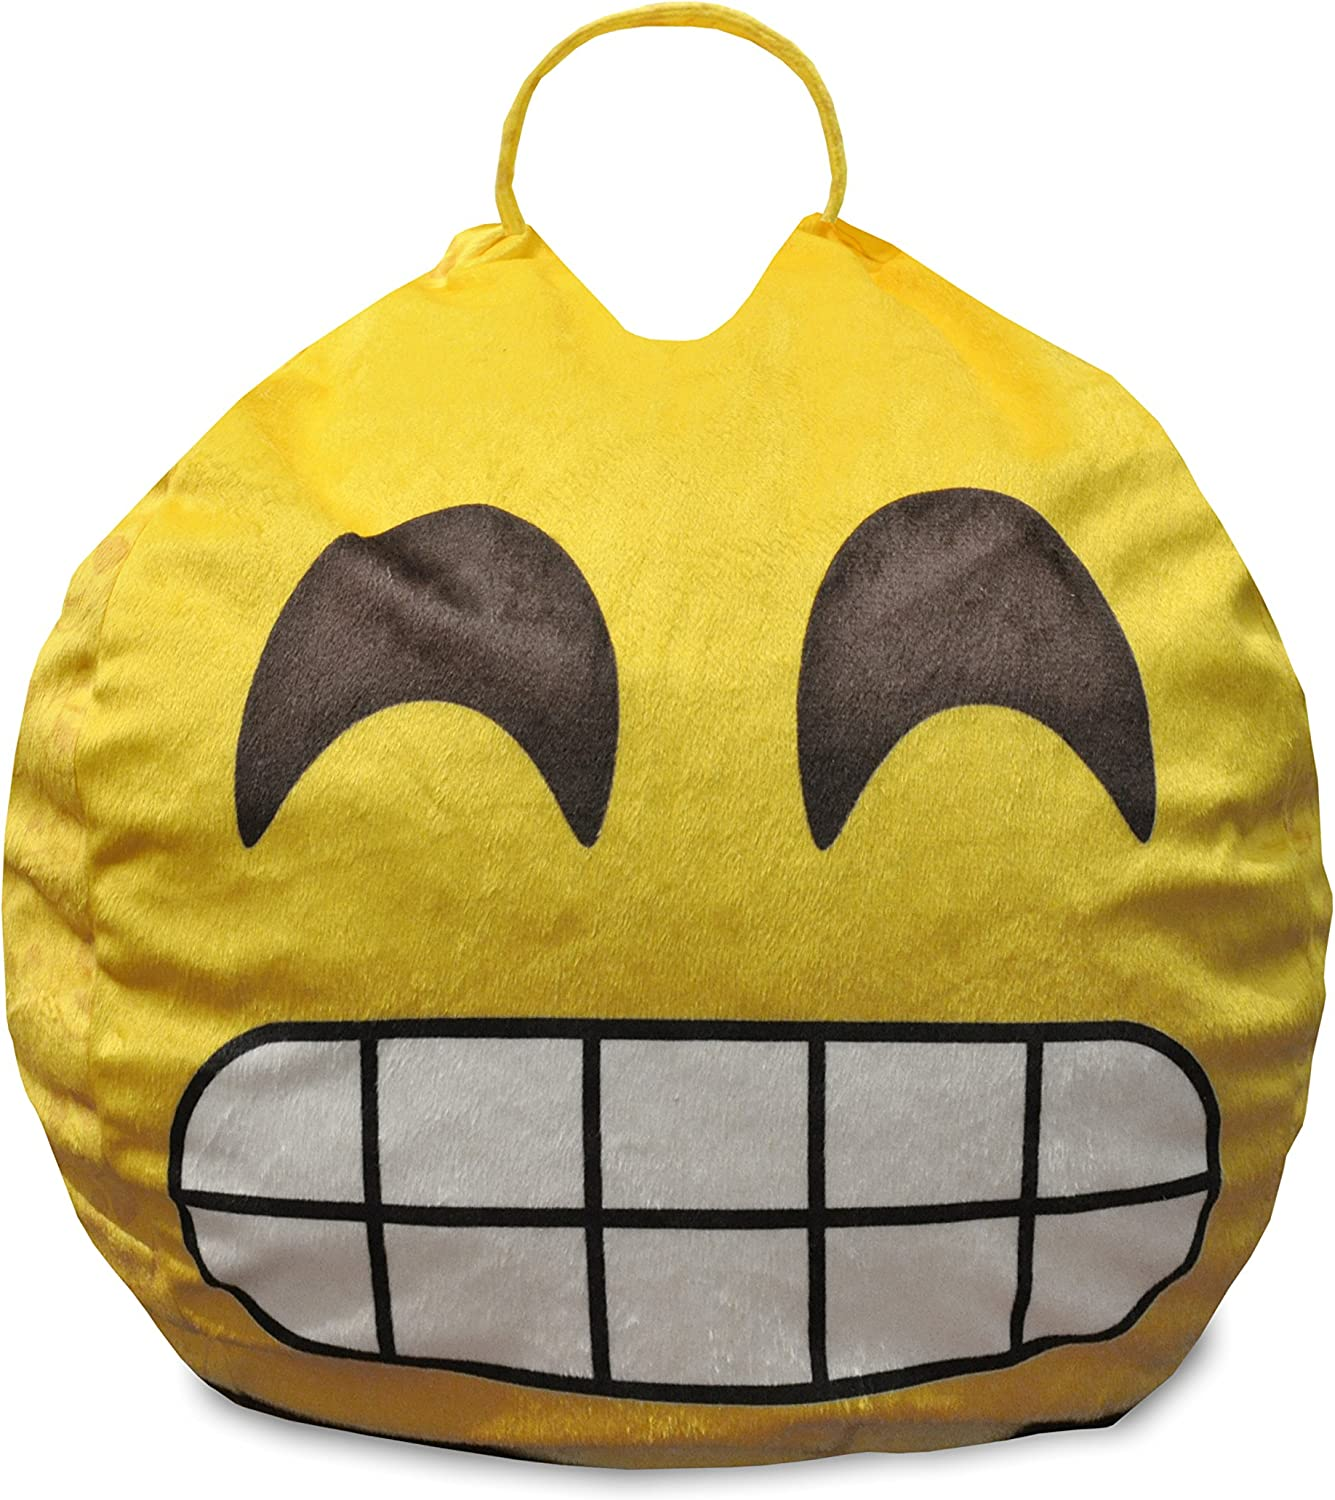 Emoji Pals Flawless Bean Bag with Handle, Yellow, 55